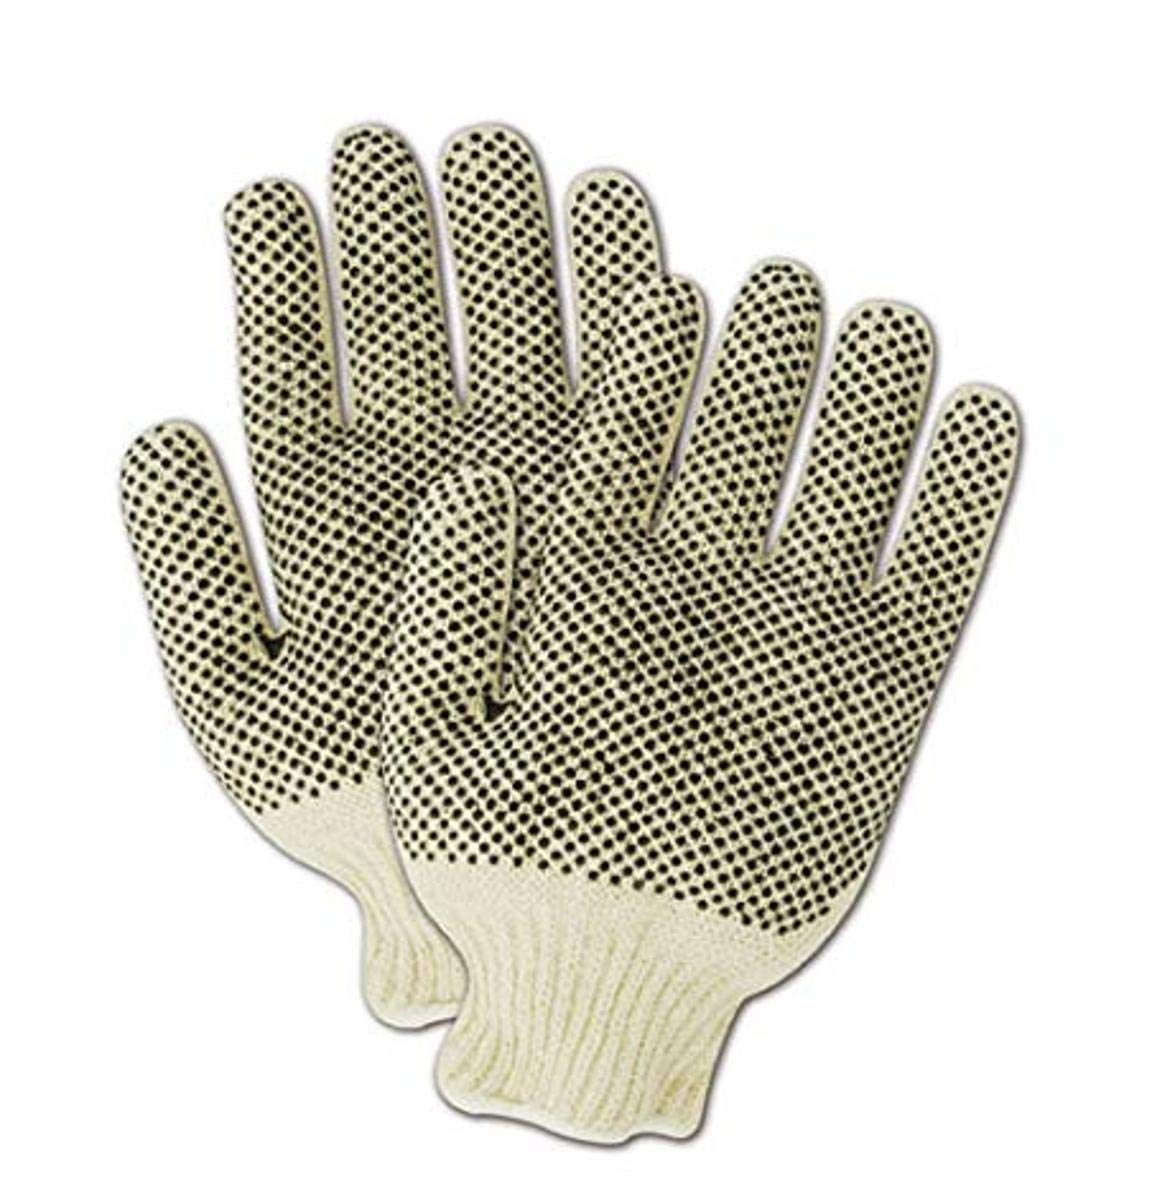 MAGID MultiMaster T936 Cotton/Polyester Glove, Two-Sided Plastic Dots, 10